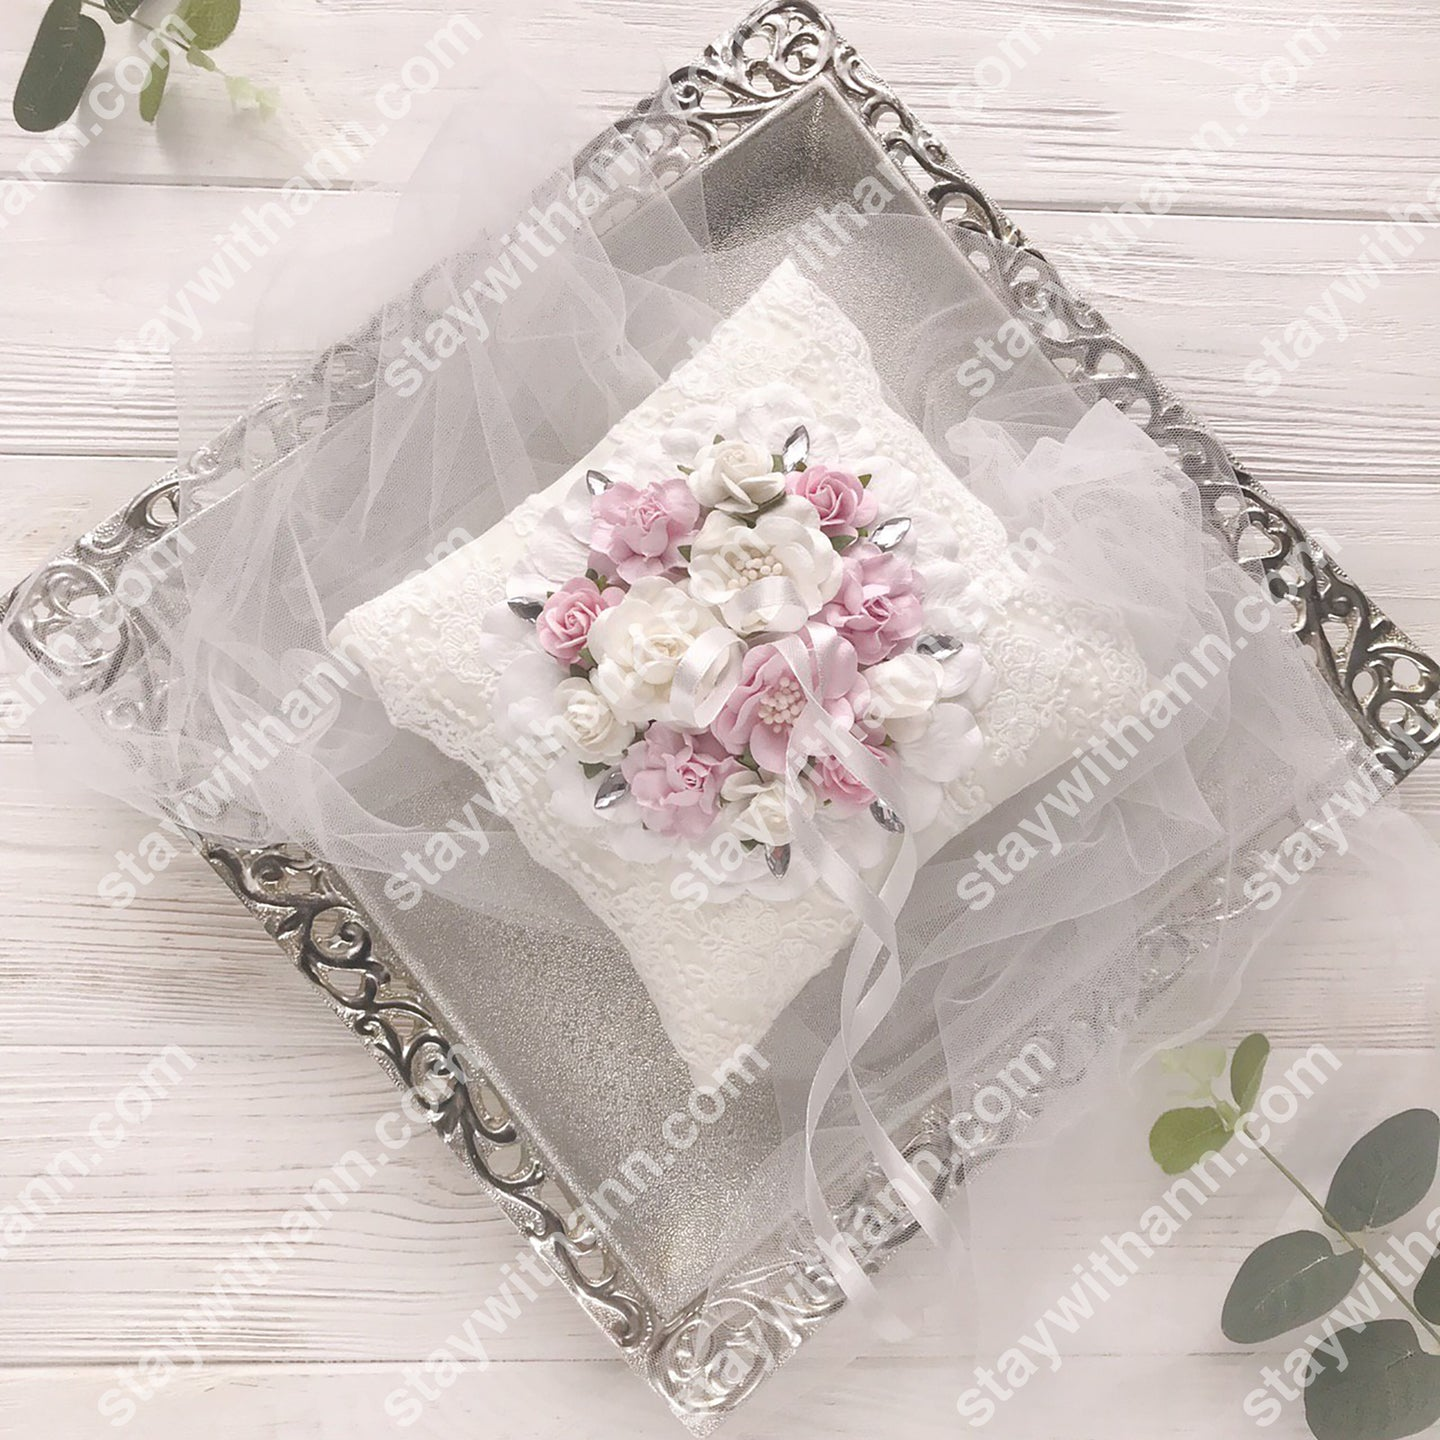 White Pink Silver Wedding Ring Pillow